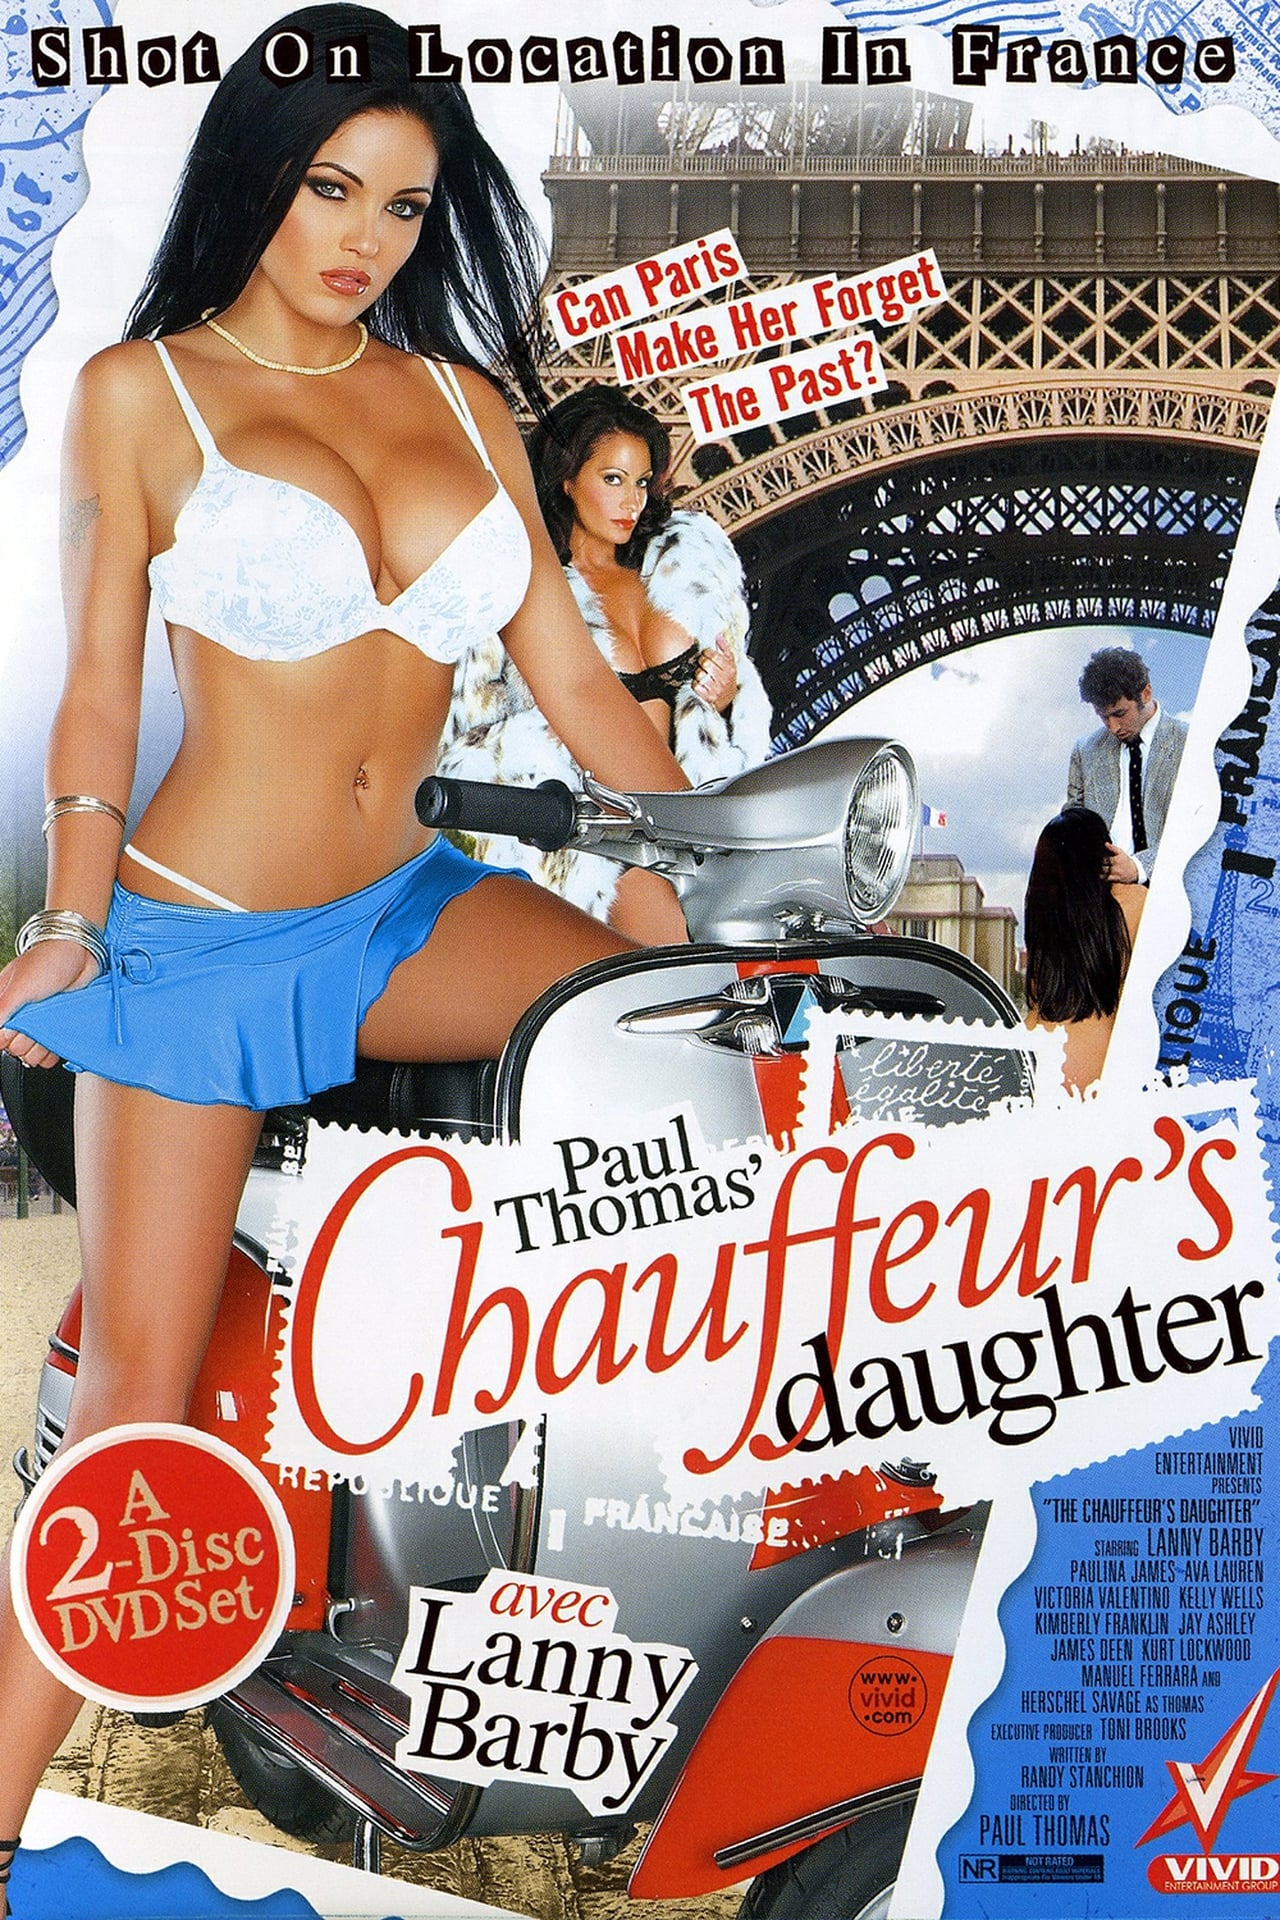 The Chauffeur's Daughter